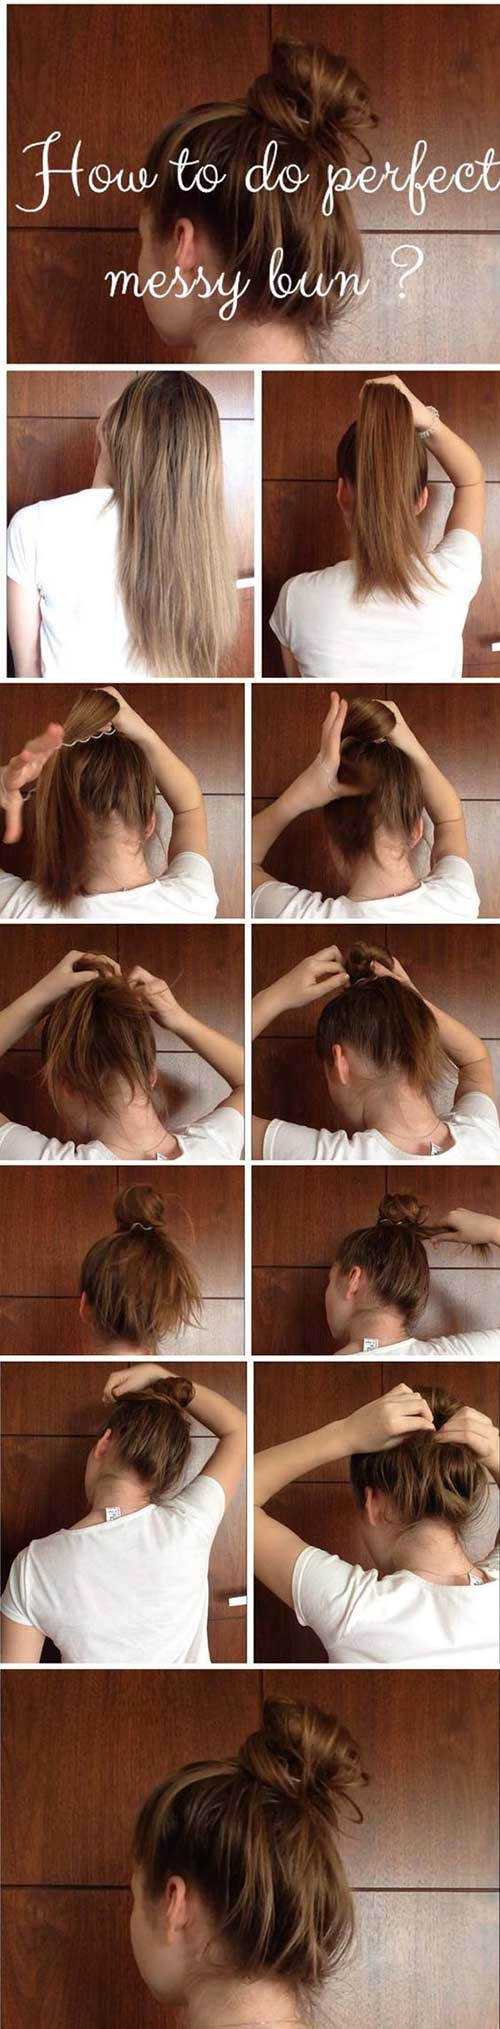 6. The Messy Bun Updo